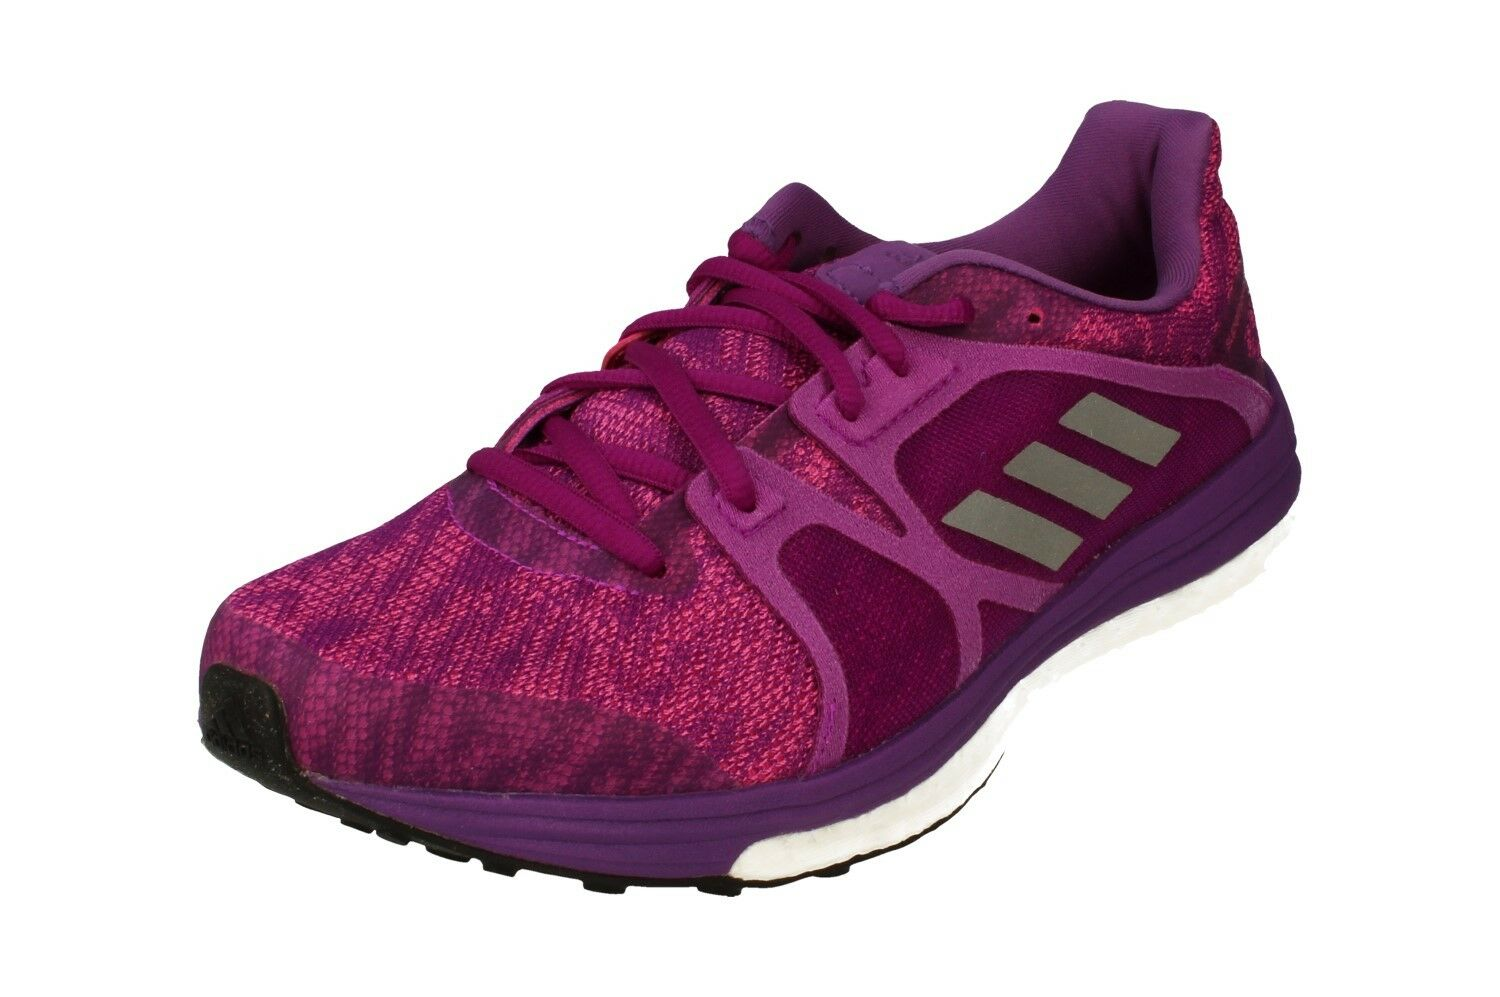 Adidas Wo Hommes Supernova Sequence 9 Boost Running Trainers Trainers Trainers AQ3548 9b621b